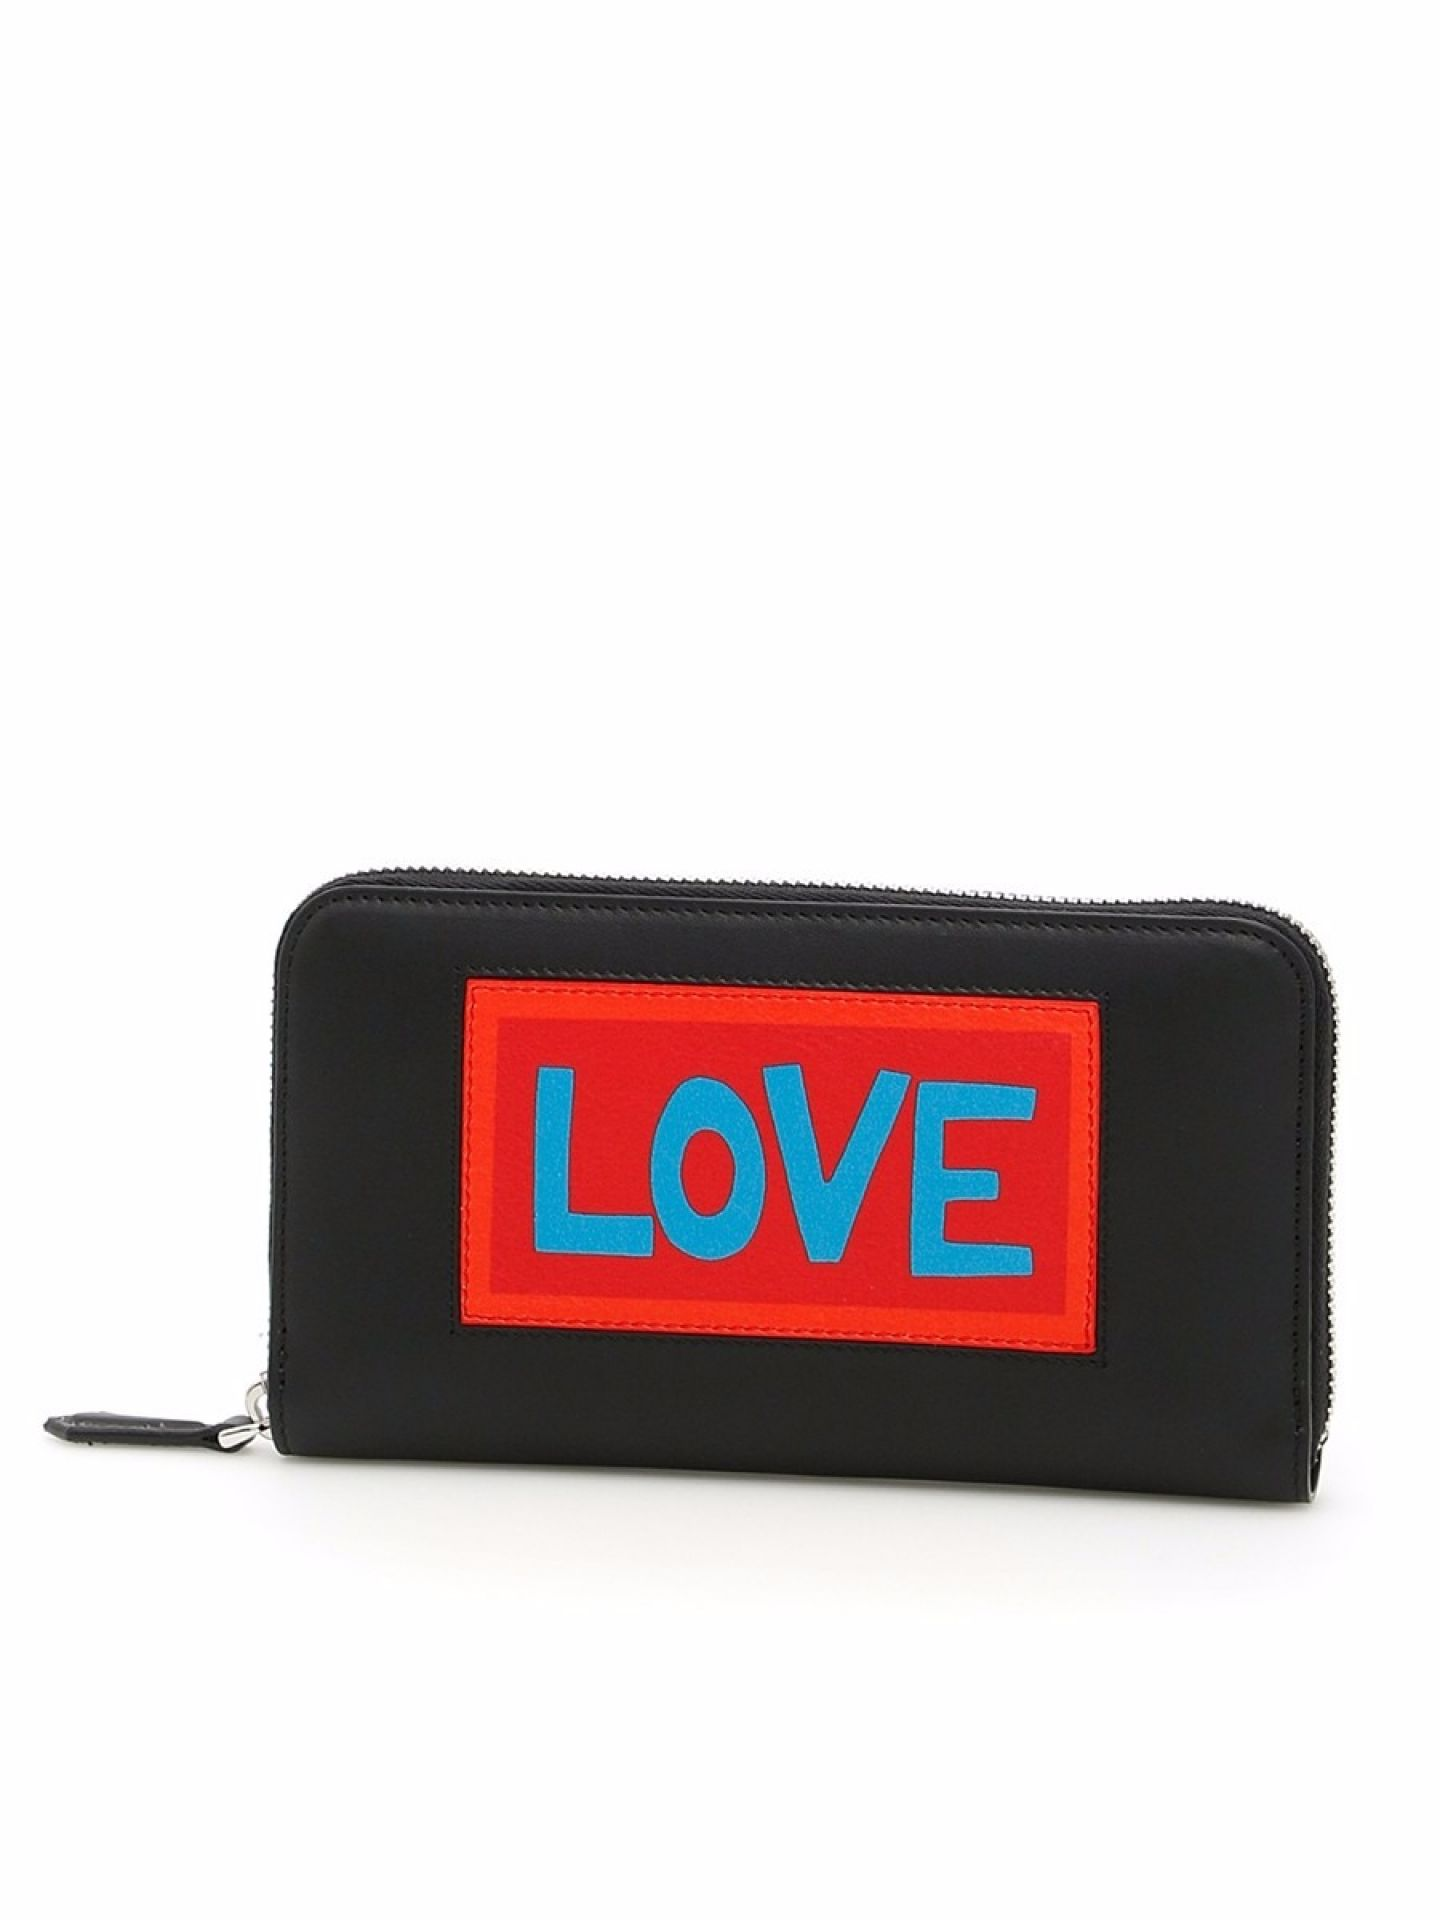 FENDI LOVE BLACK LEATHER ZIP AROUND WALLET